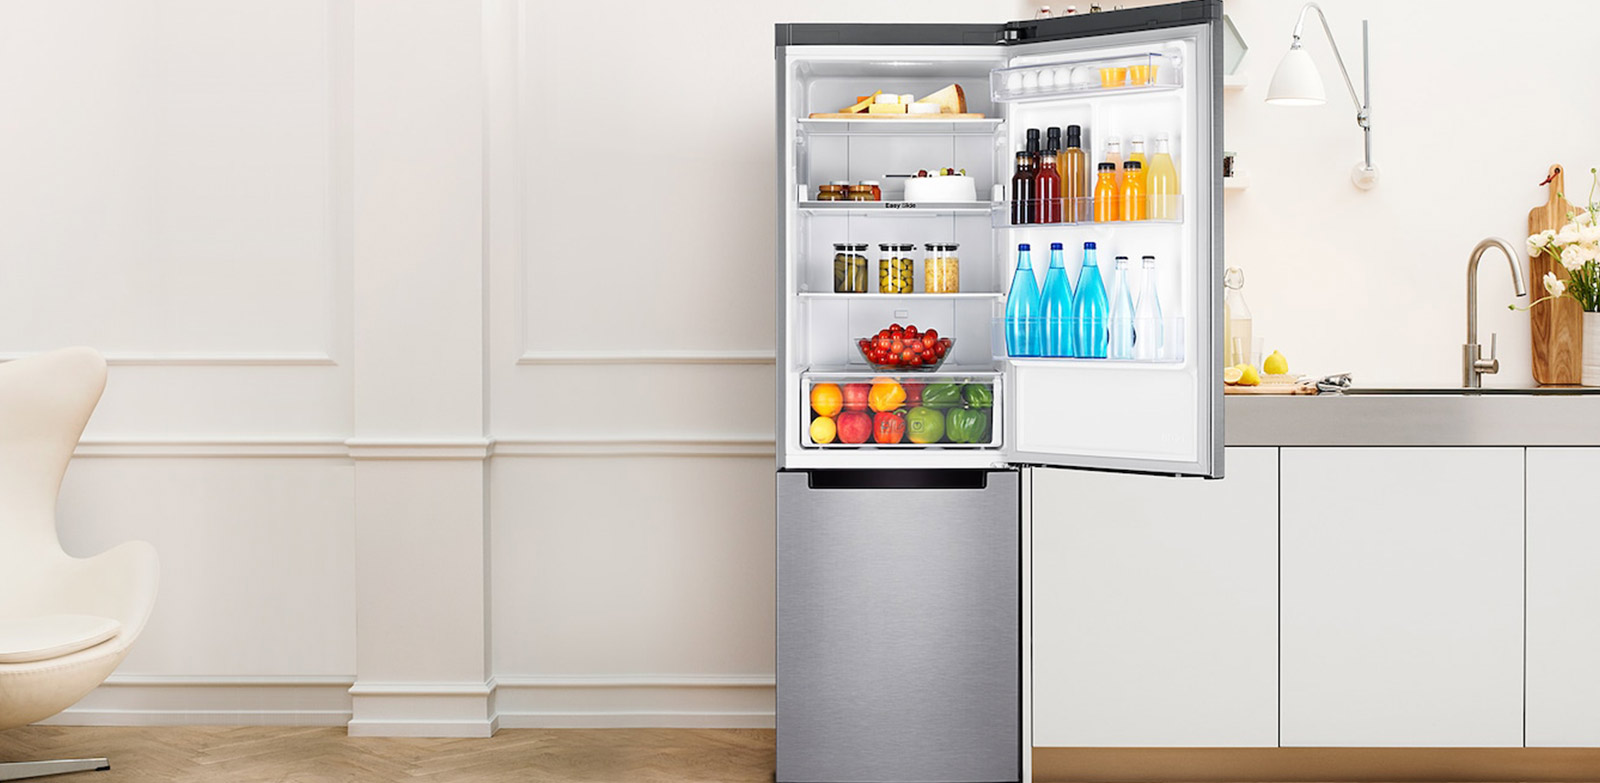 SAMSUNG - 321L Bottom Freezer With Water Dispenser And Cool Pack - RB33J3611S9